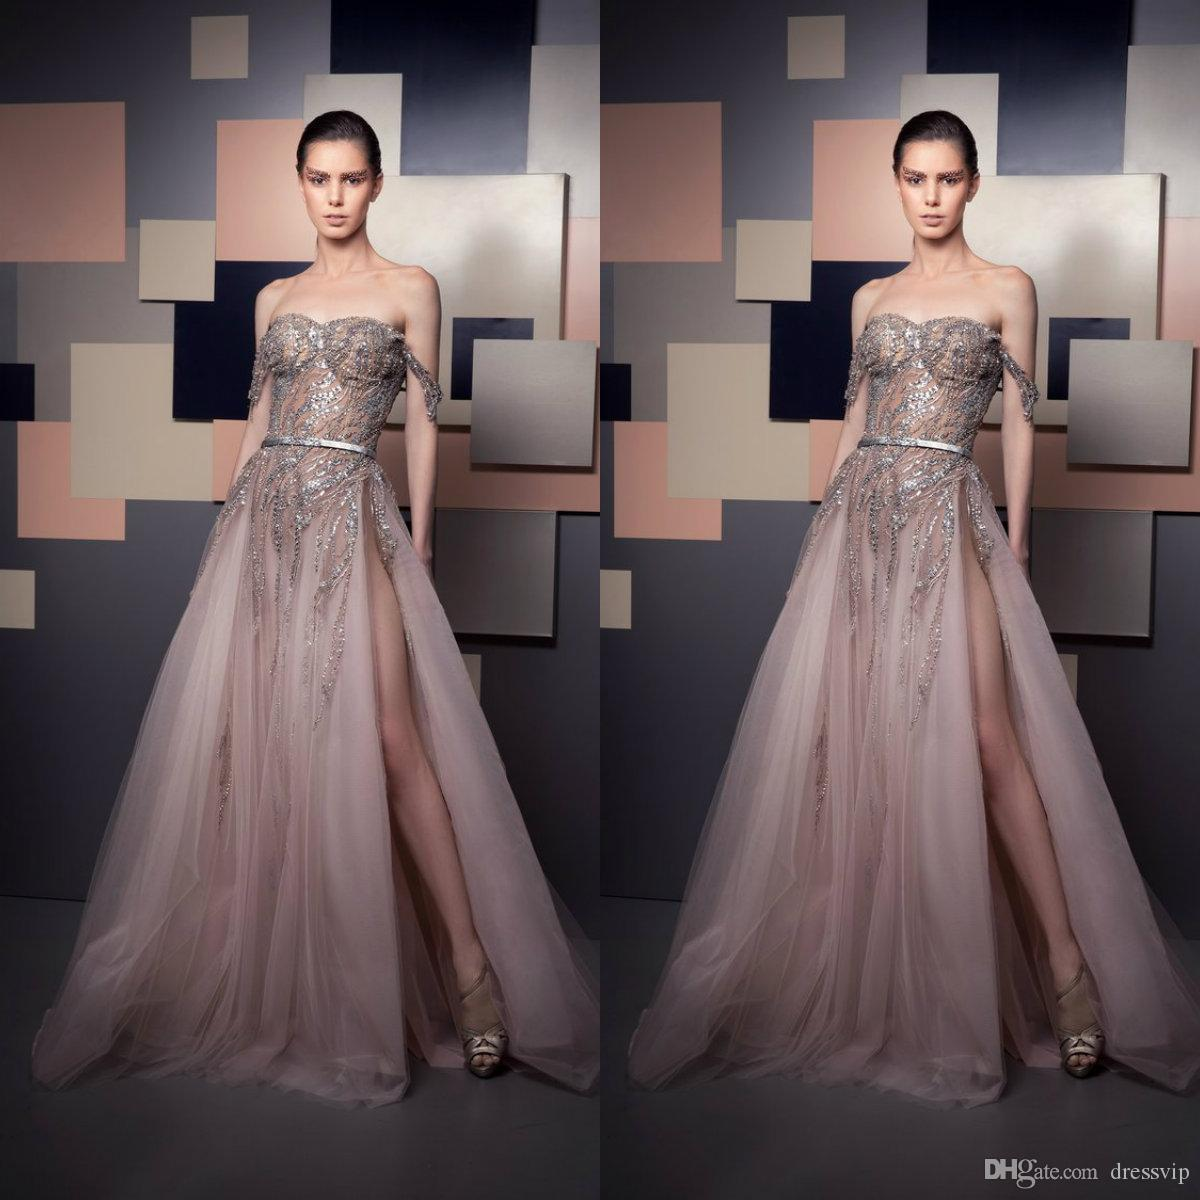 2019 Ziad Nakad Evening Dresses Off Shoulder Luxury Beads Sequins Illusion  Bodice Sexy High Side Split Prom Dress Party Wear Special Gowns Sexy Plus  Size ... 534510166f26